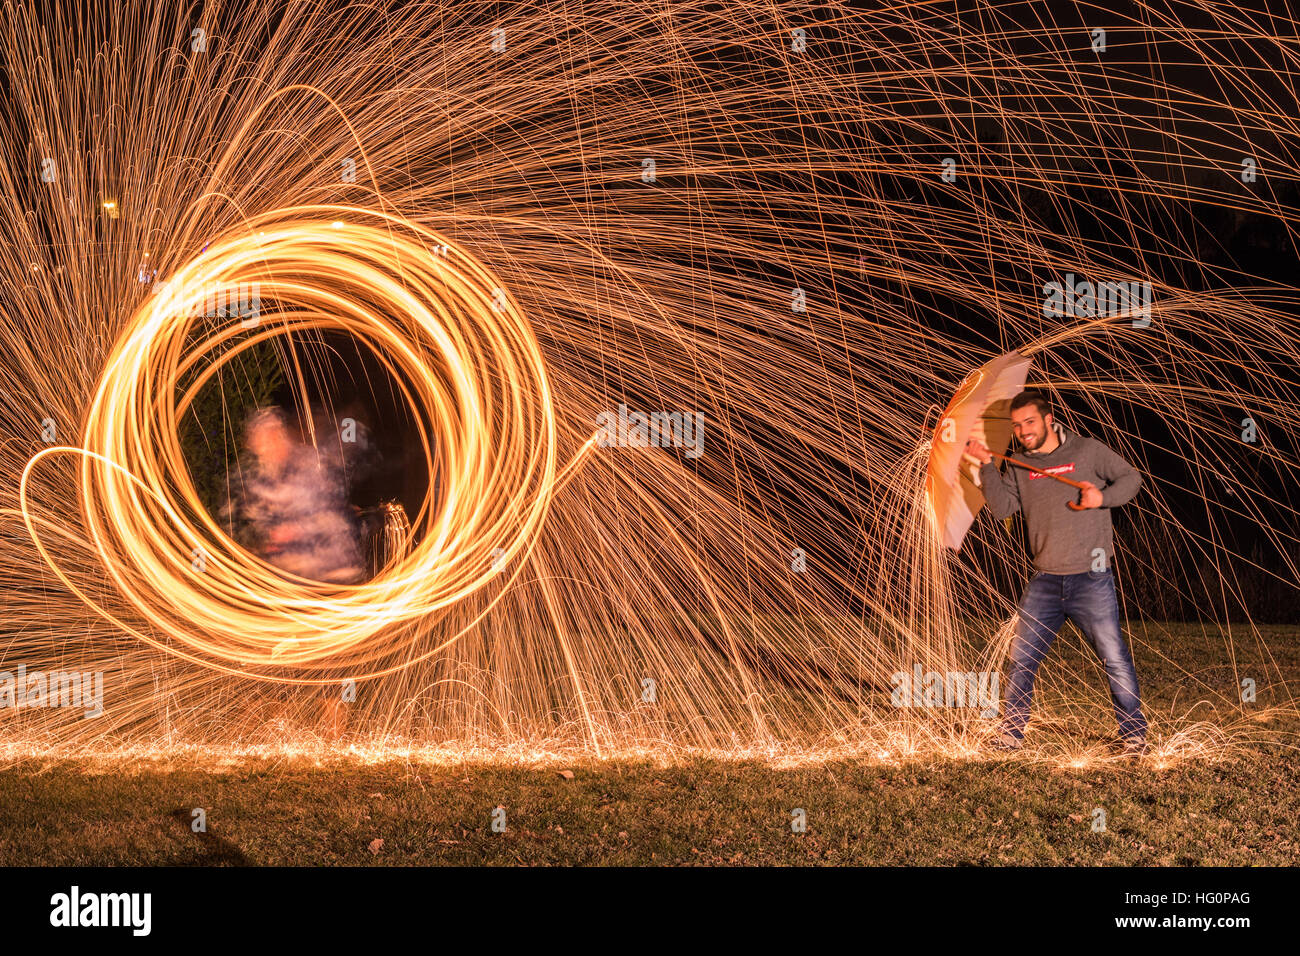 Steel wool photography with an umbrella Stock Photo